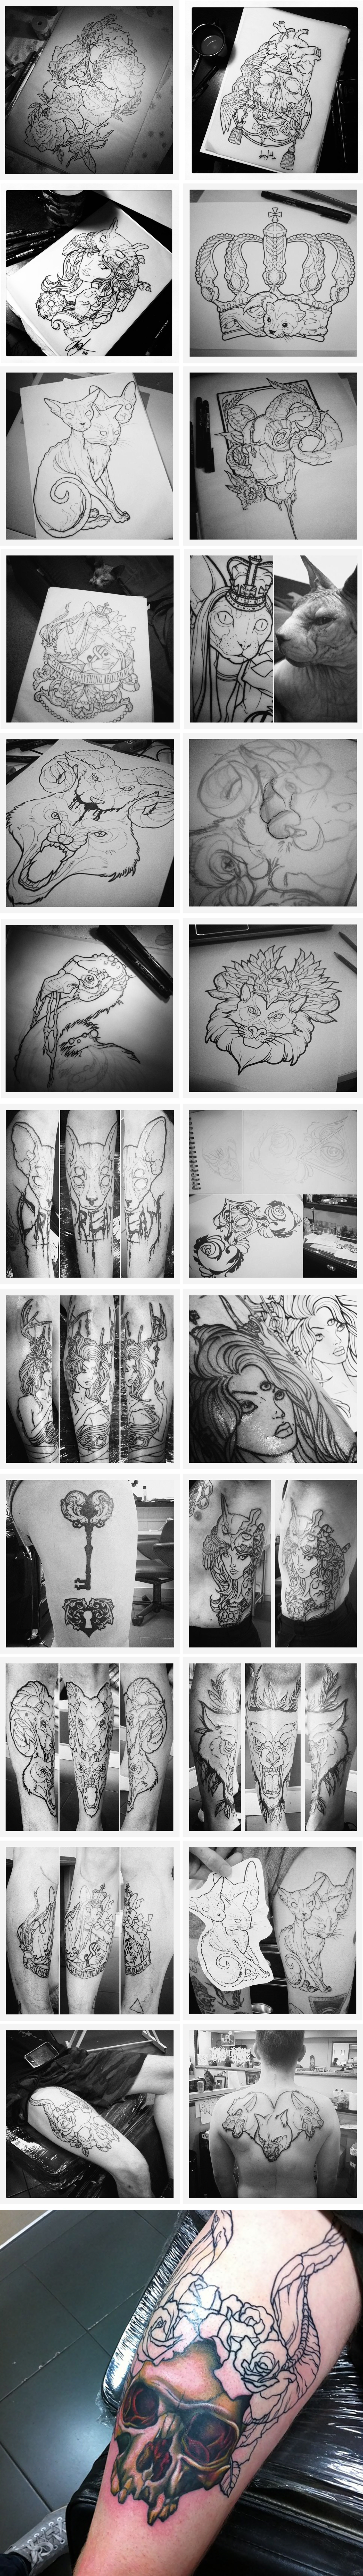 Sara Fabel Art OK the fourth one down from left ,three eyes version rear calf ,maybe over inner calf flowing